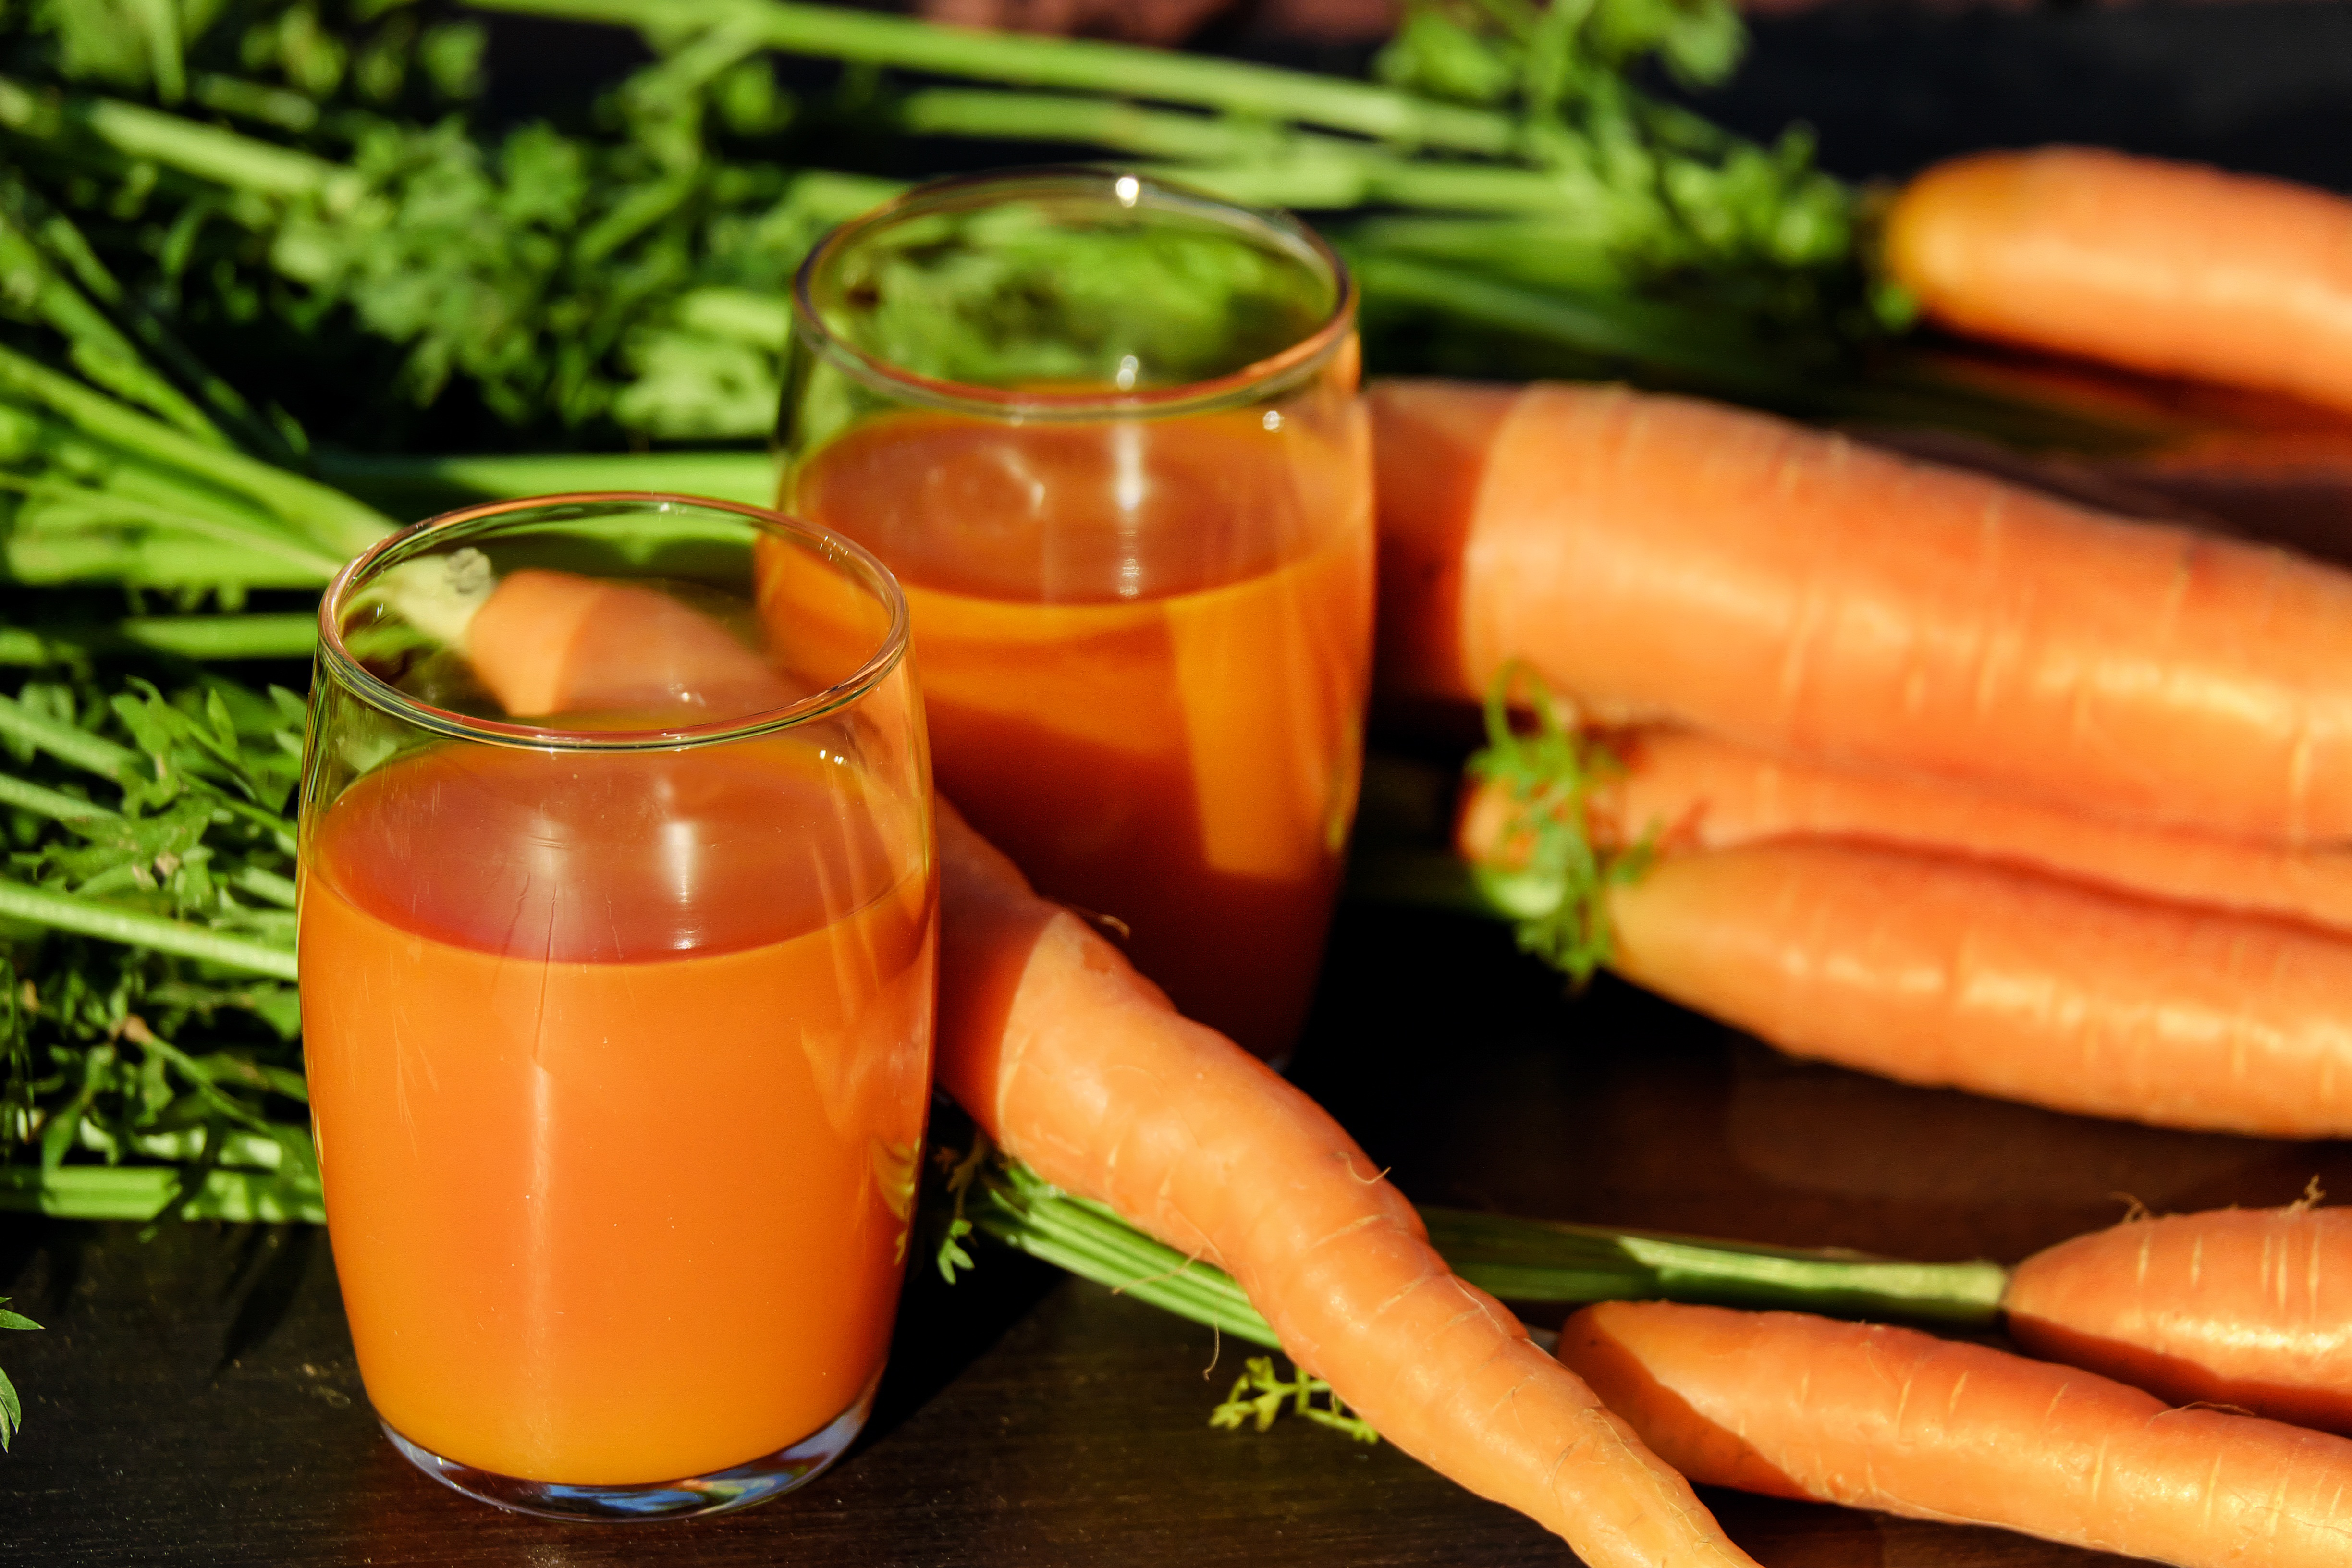 picture of carrots and carrot juice found at https://static.pexels.com/photos/162670/carrot-juice-juice-carrots-vegetable-juice-162670.jpeg